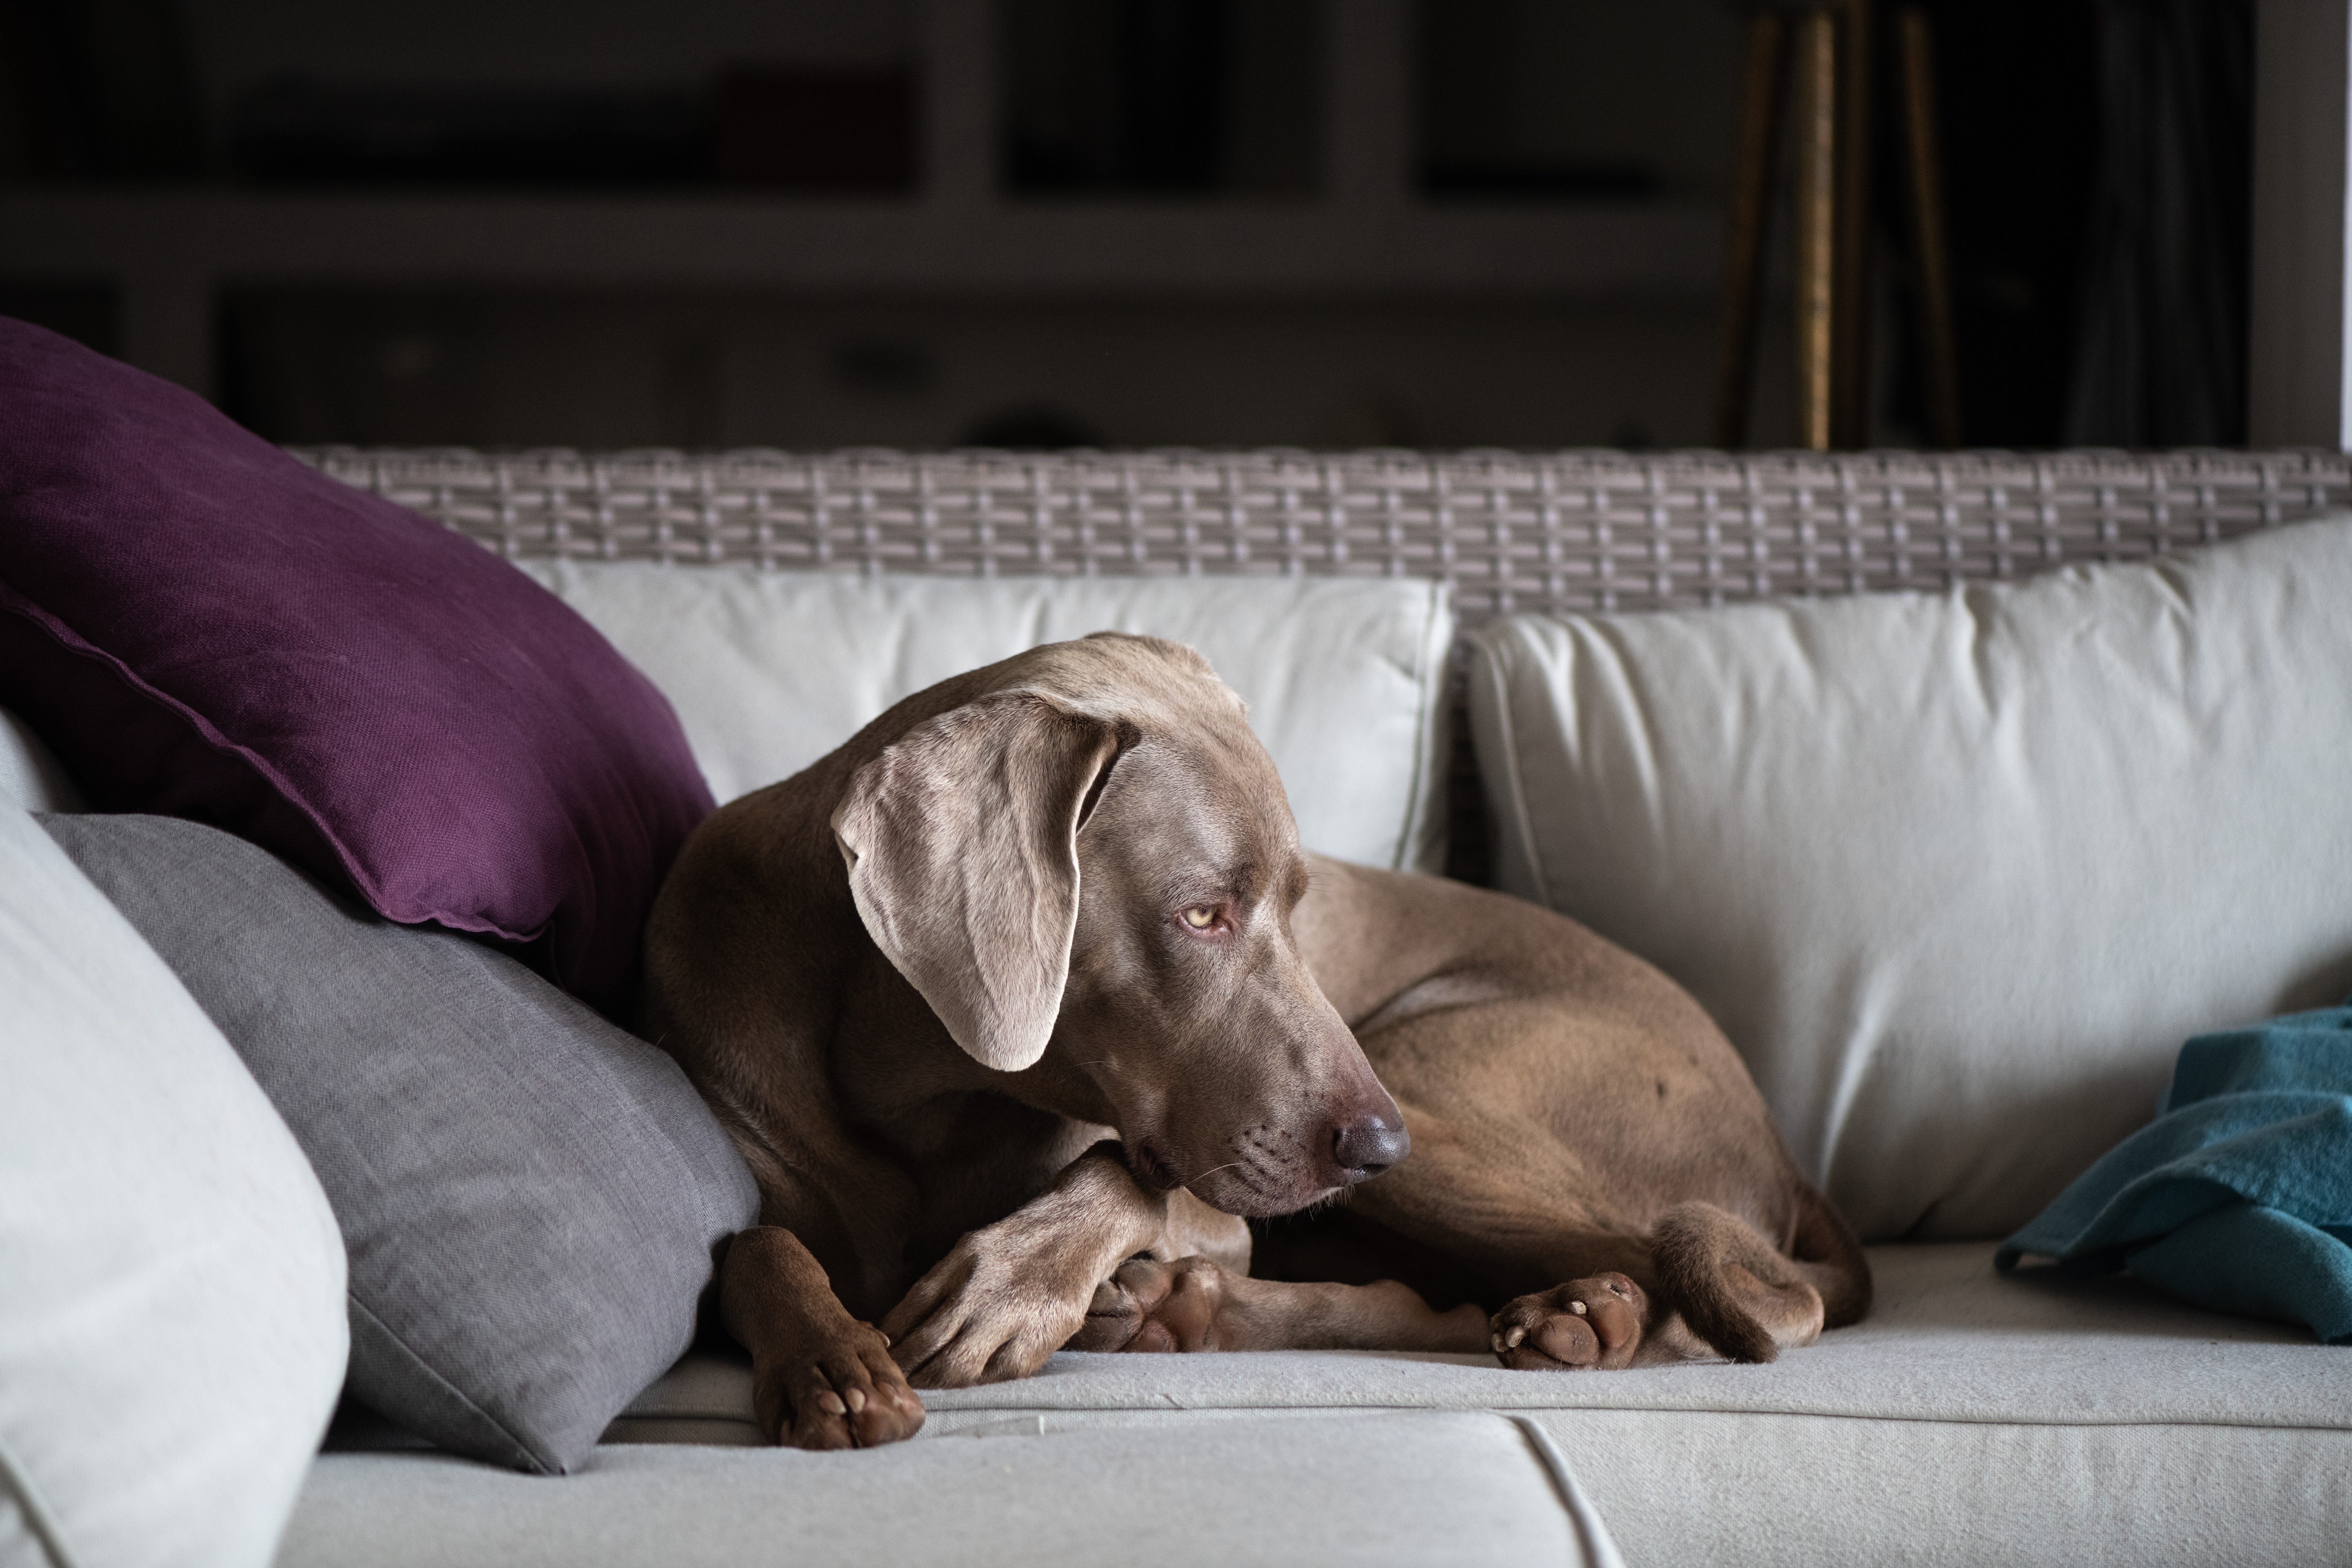 A Weimaraner Dog sitting on the couch in the Living Room